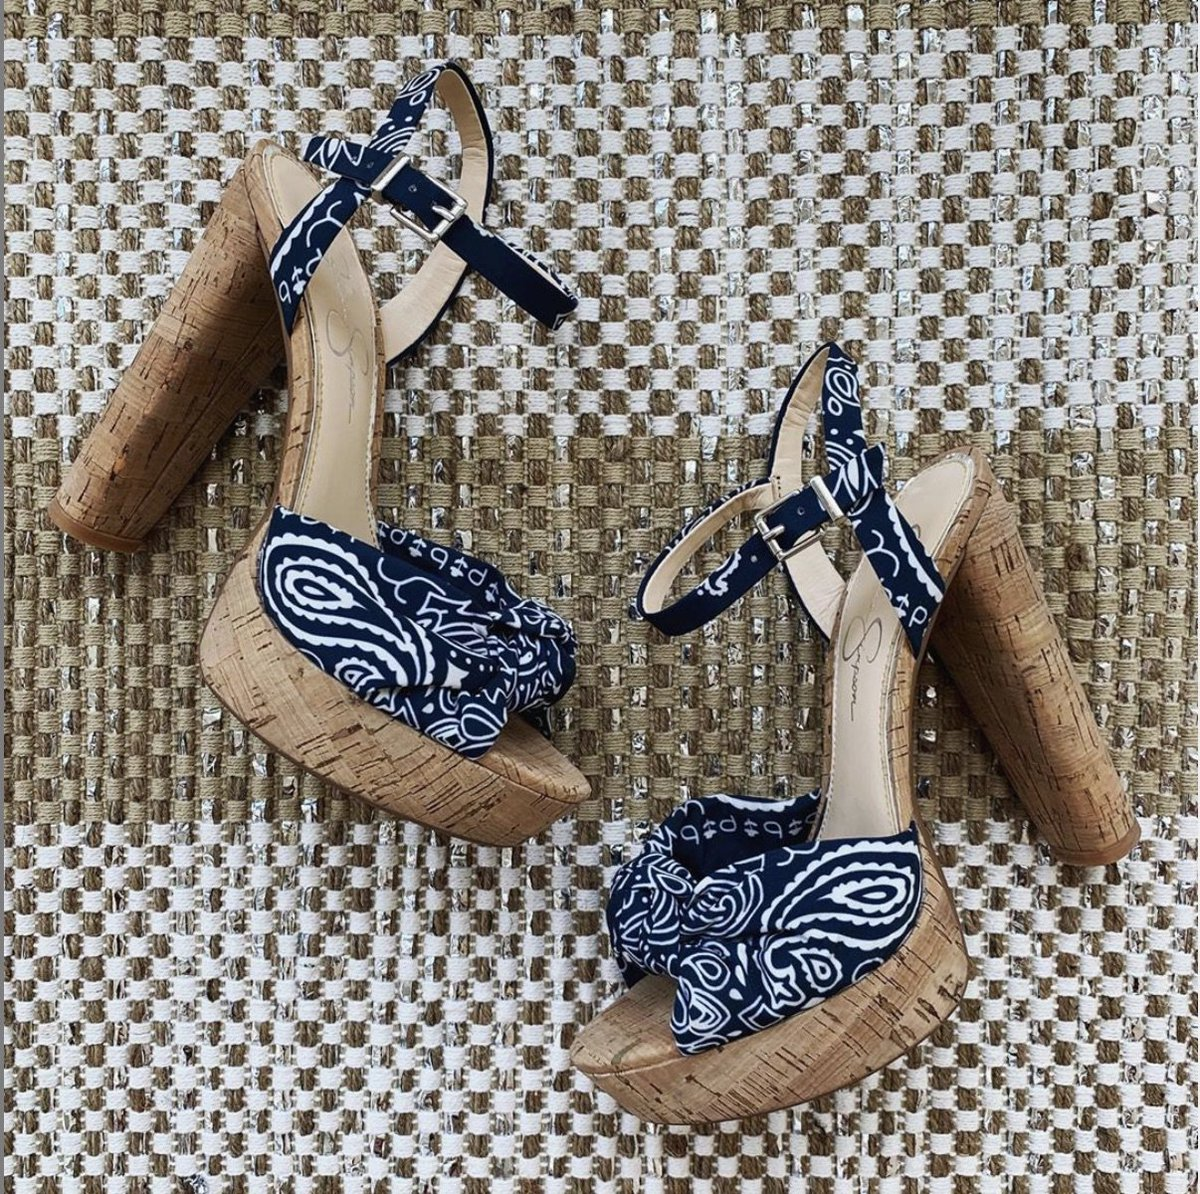 My inner Texan loves these shoes!   https://t.co/k0URevwngB https://t.co/anaWEO4vVI